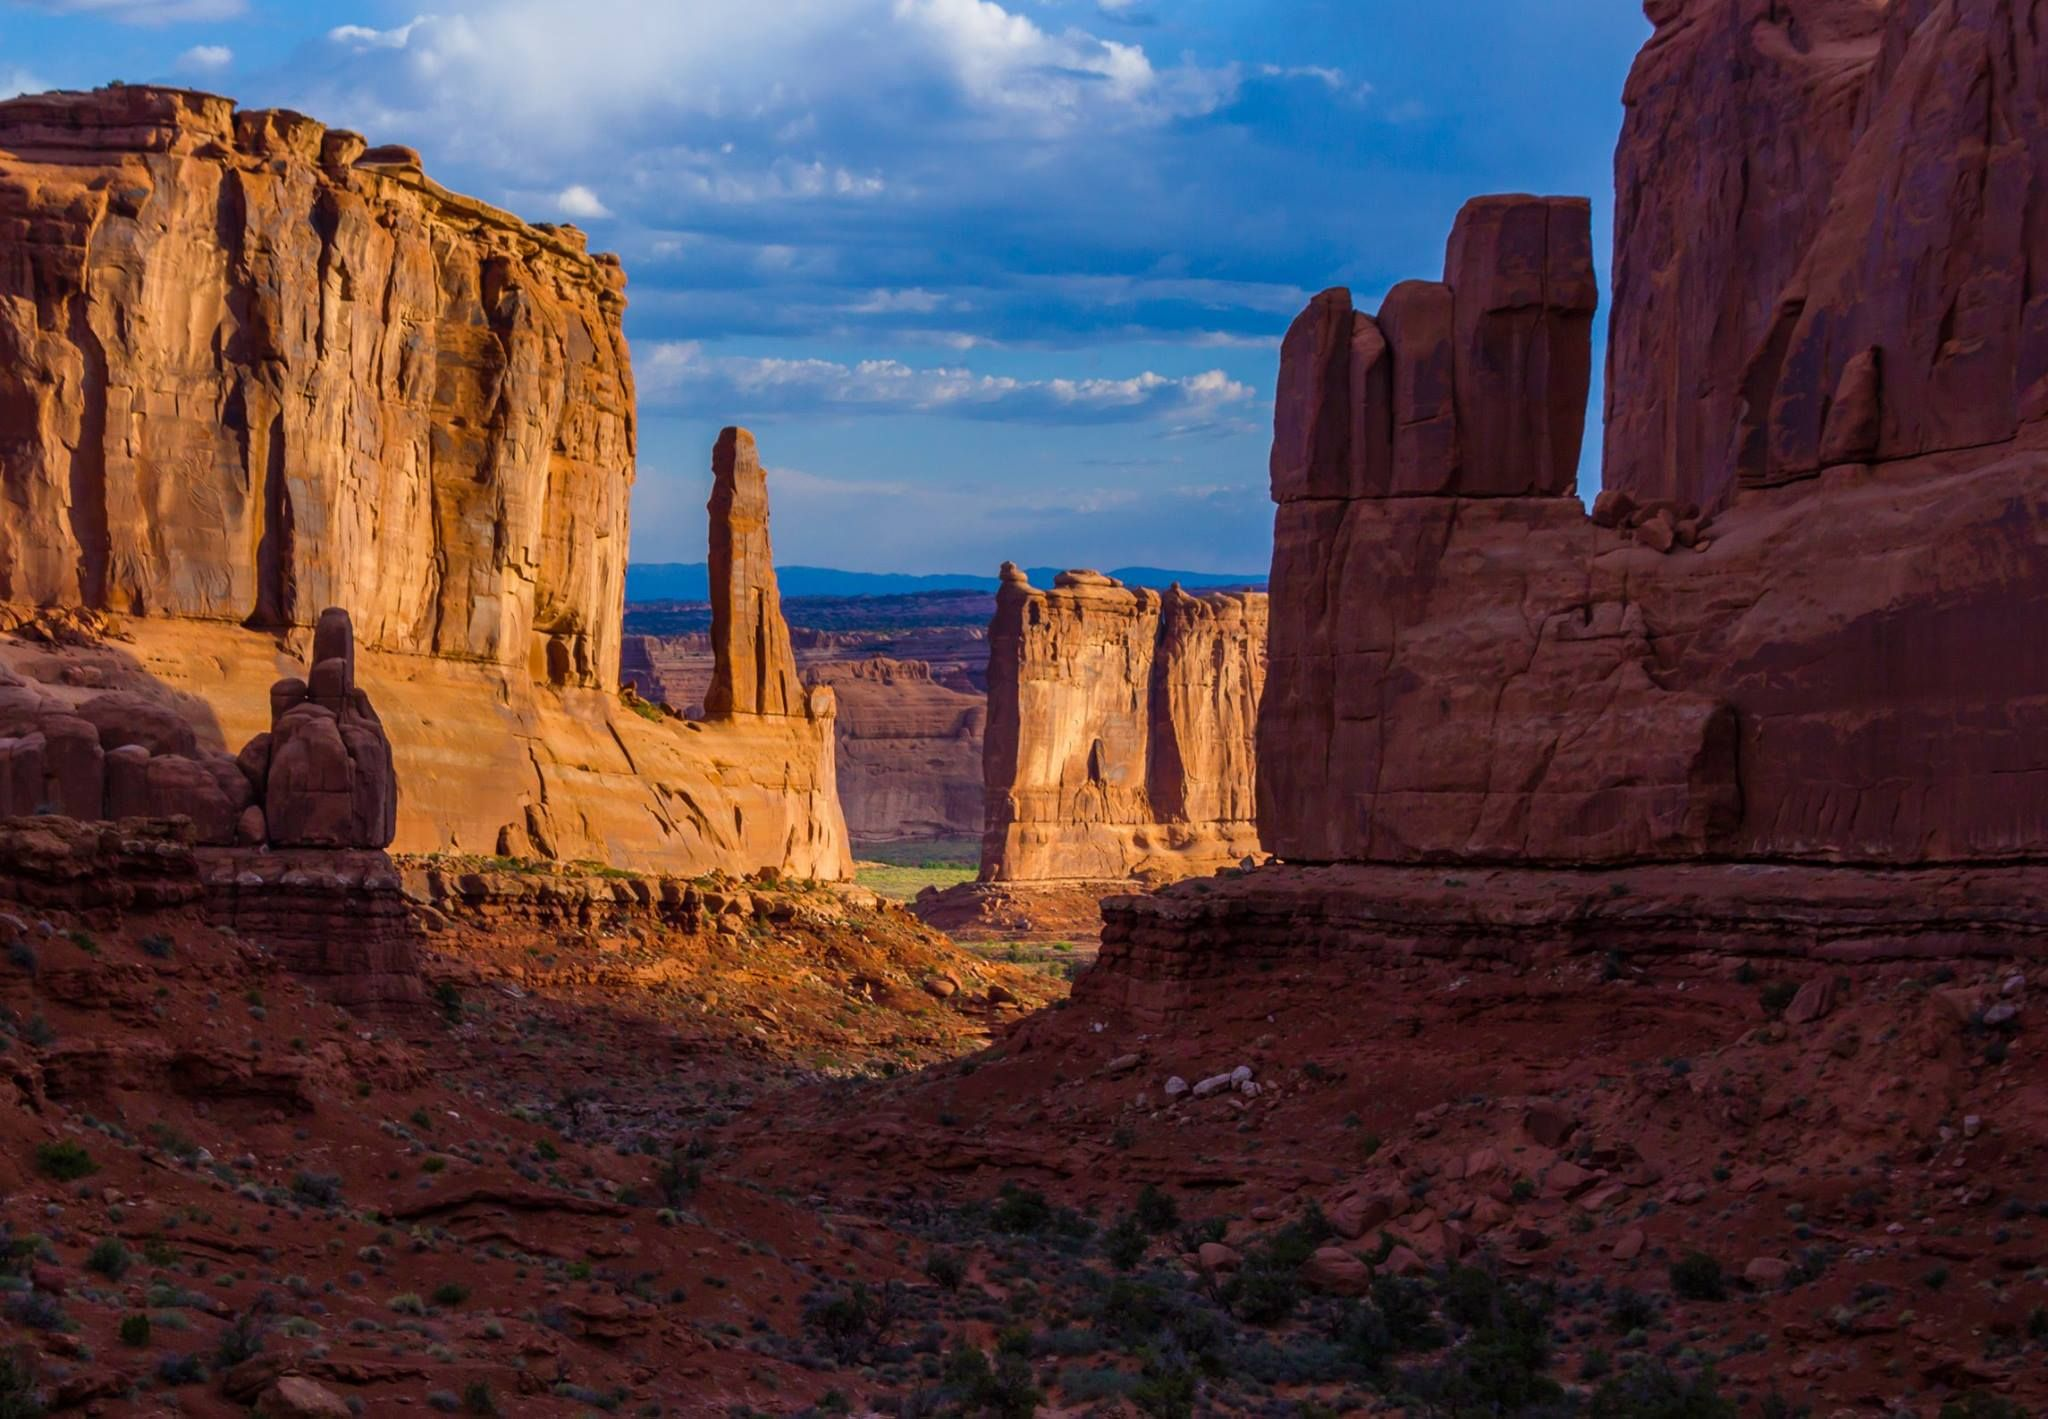 The majestic Park Avenue in Arches National Park. #Utah